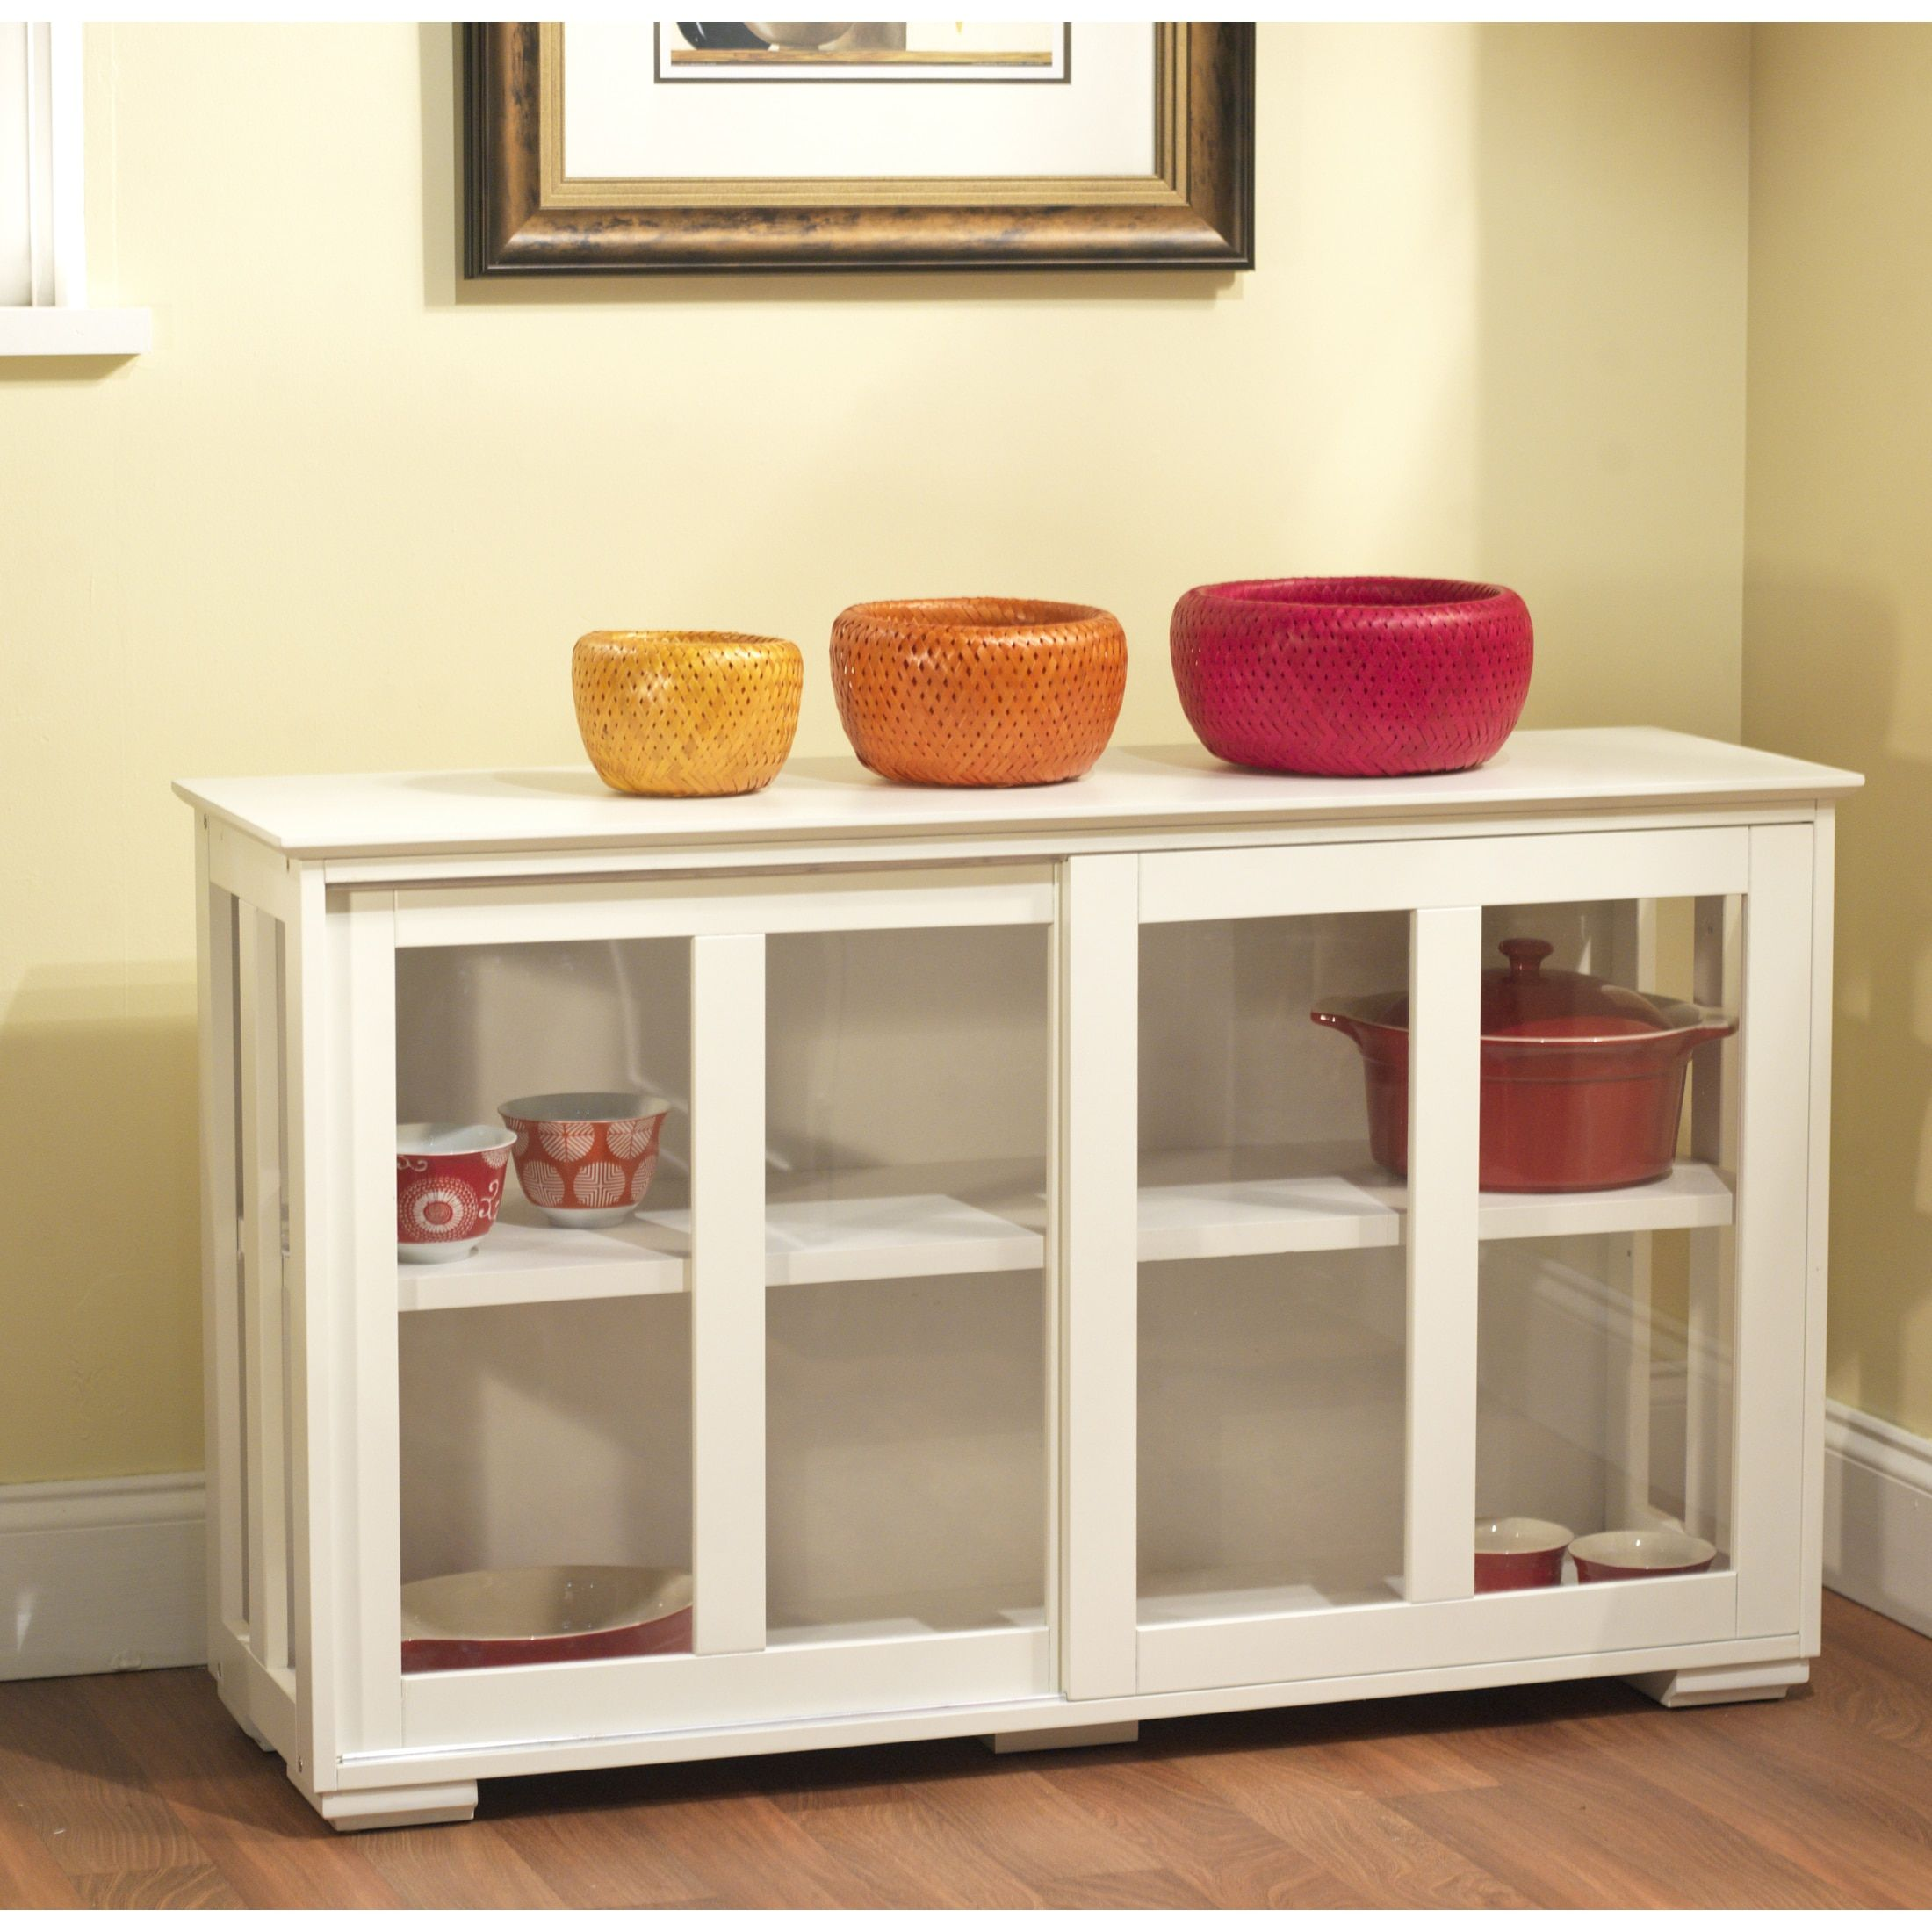 Display Cabinet Home Goods: Free Shipping on orders over $45 at  Overstock.com -